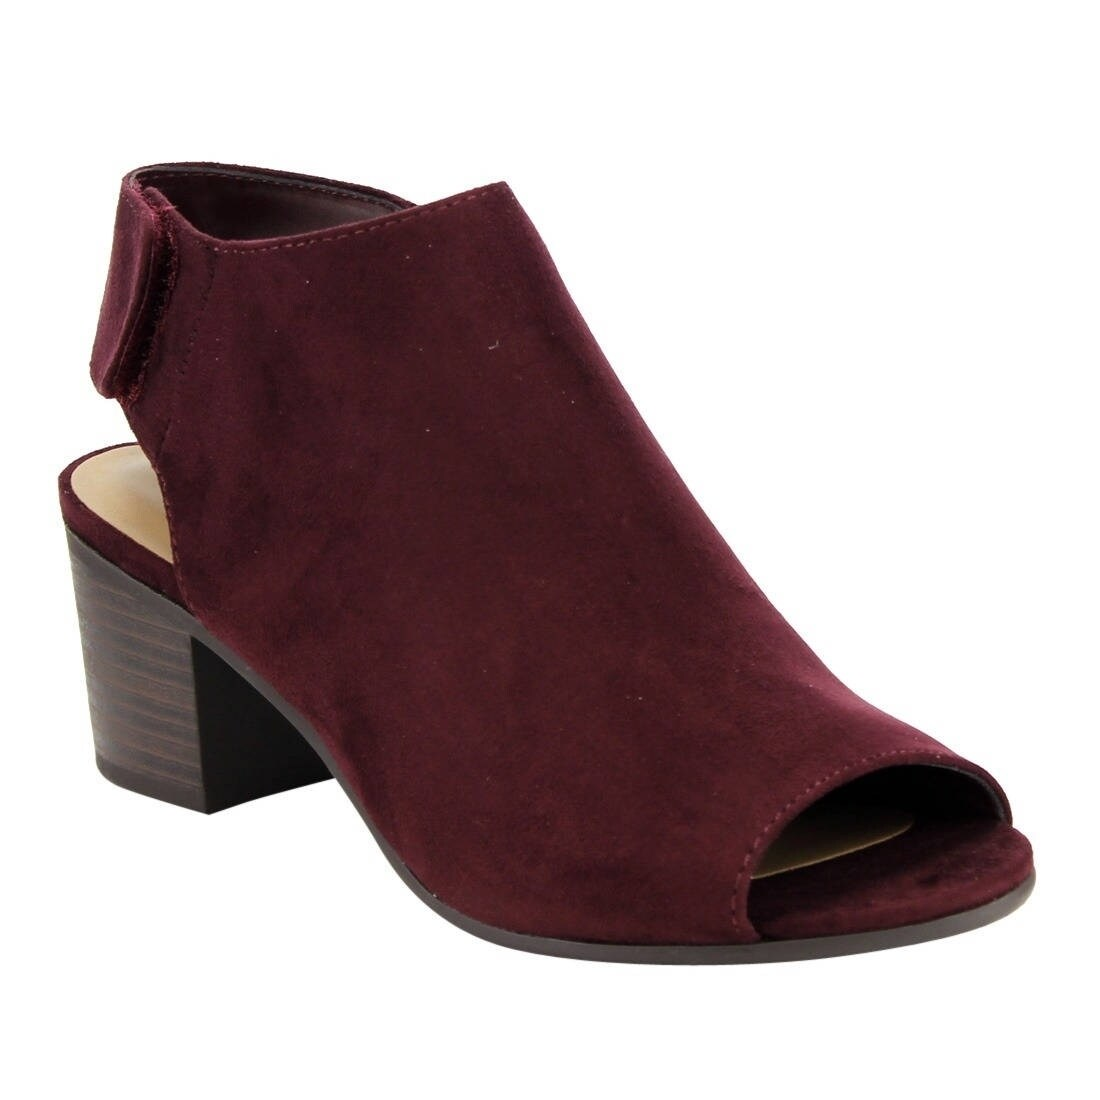 b5ab066c6decd City Classified IB69 Women's Stacked Block Heel Cutout Ankle Strap Bootie